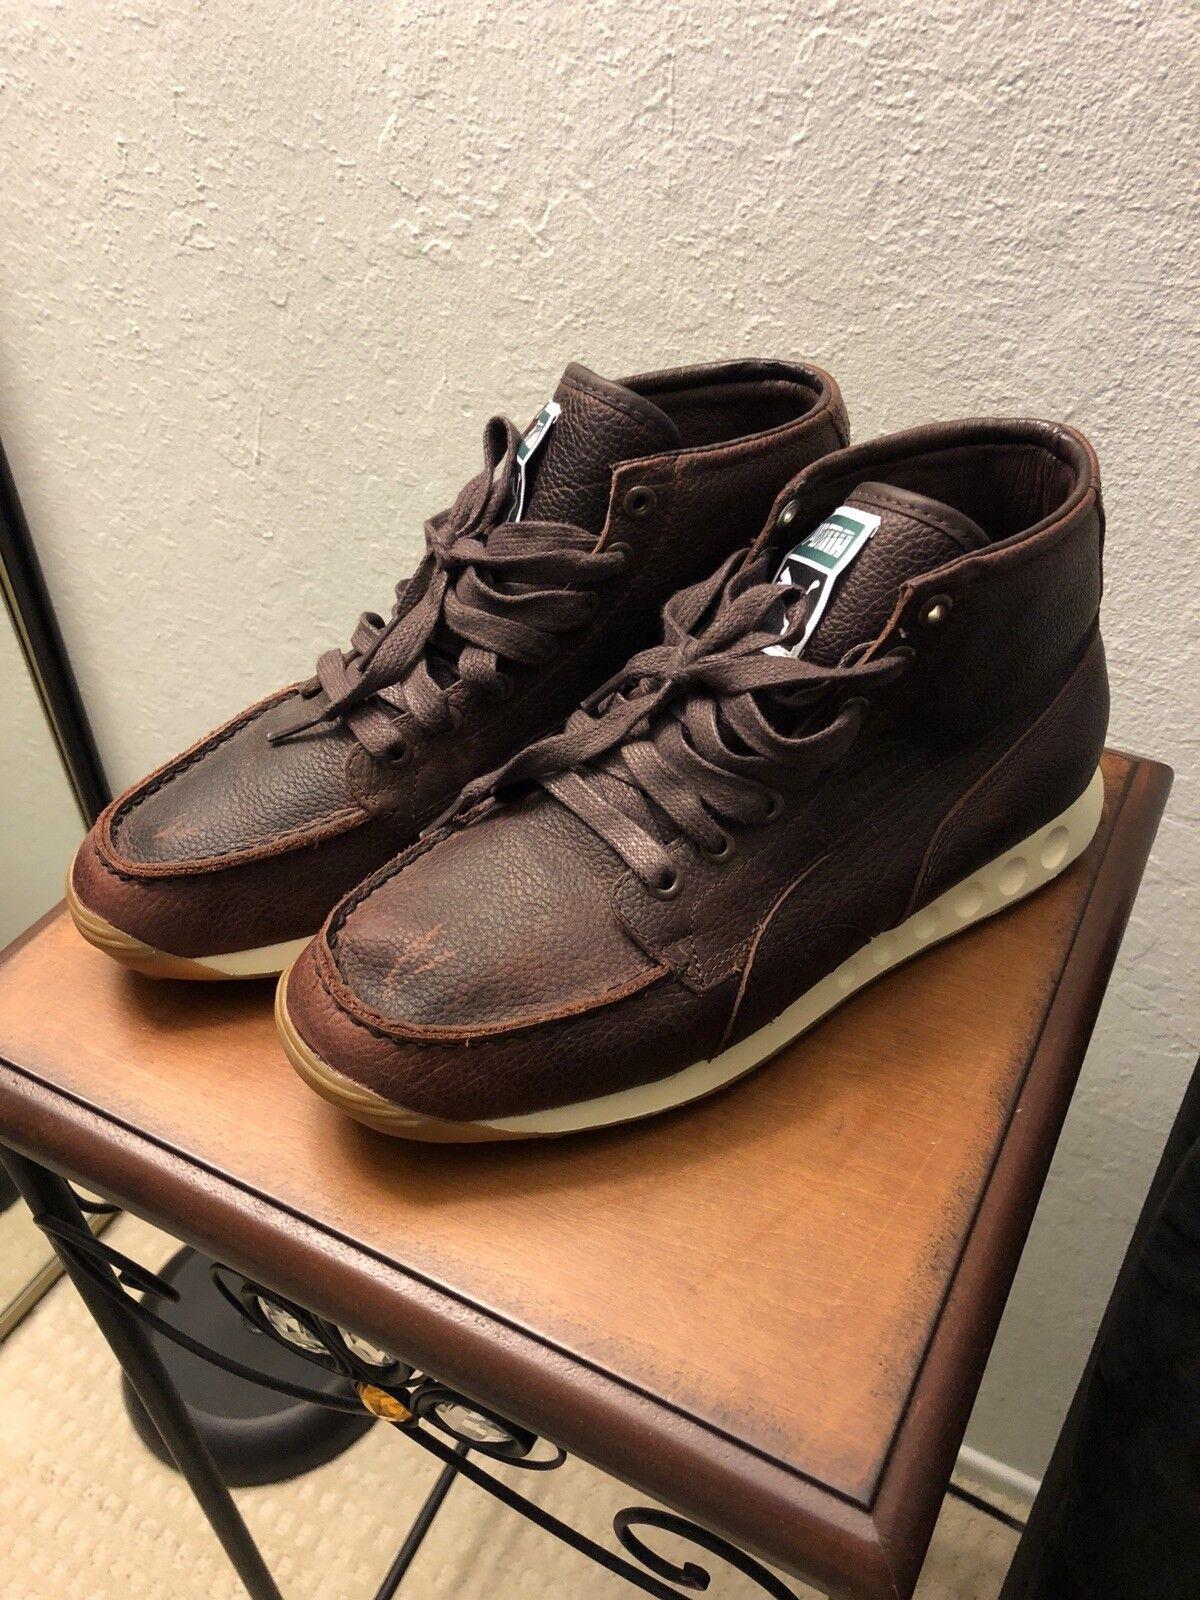 Puma Sneaker Boot Mens 8 Brand New Brown Leather Distressed Aventi